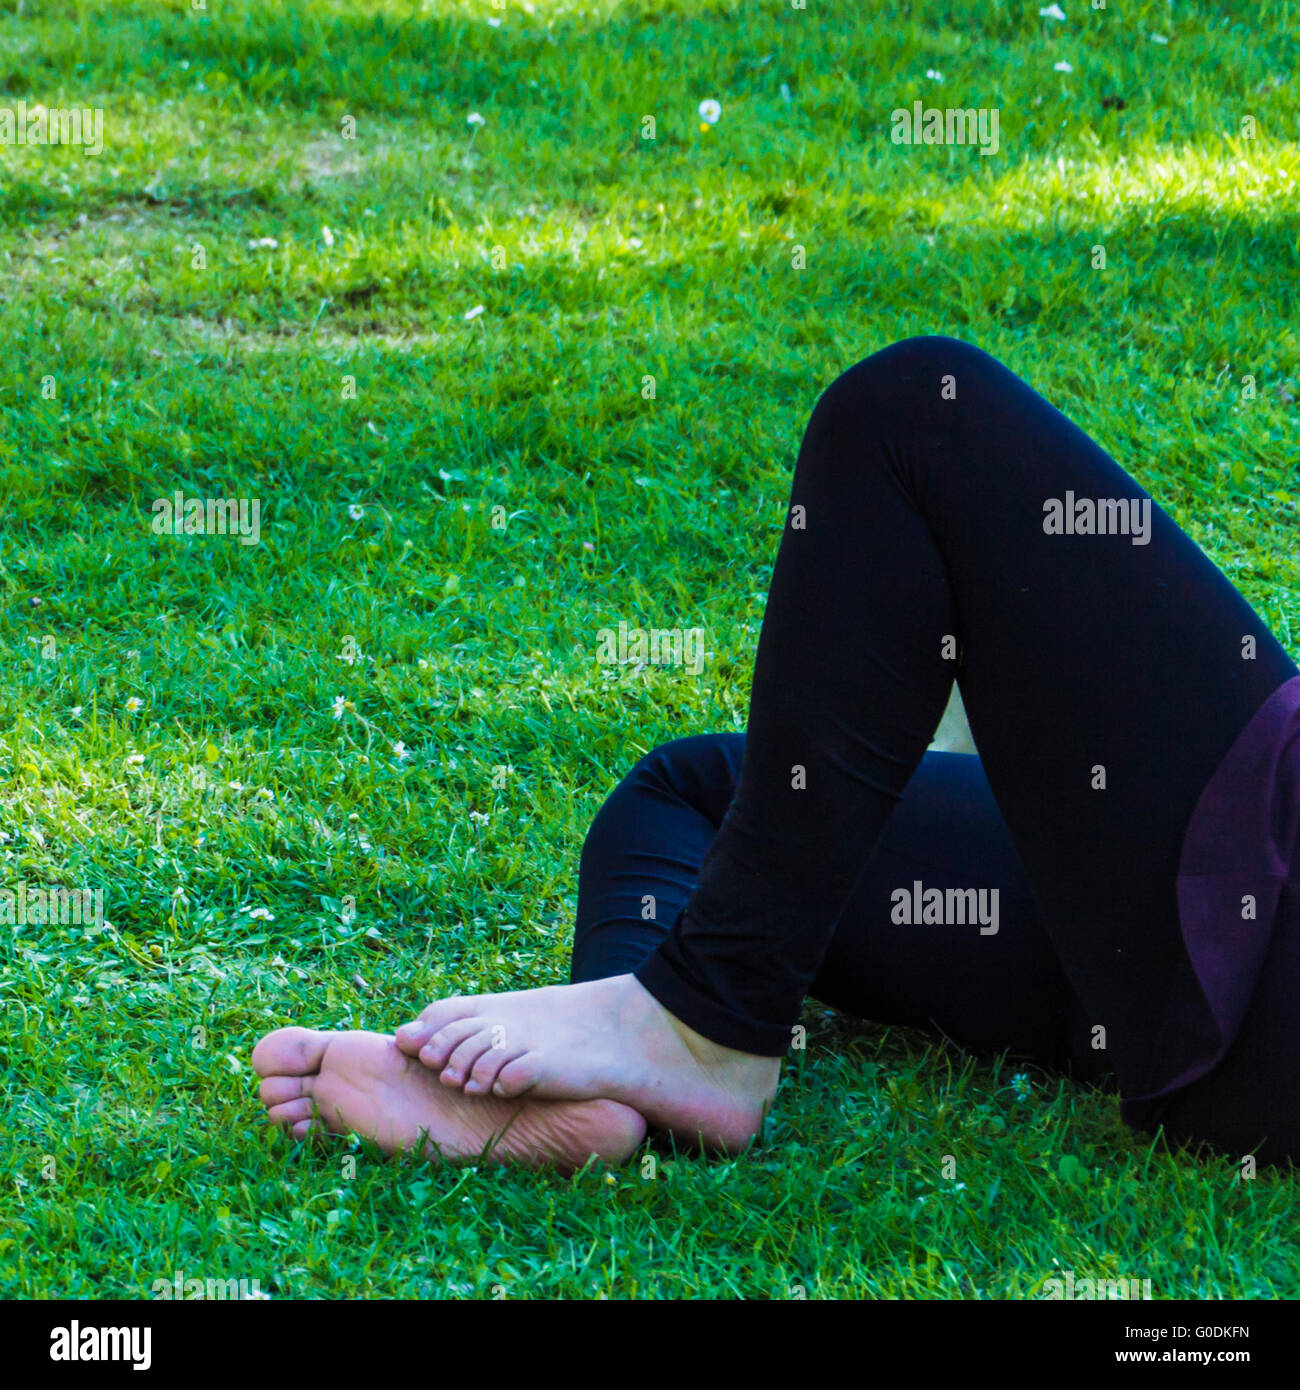 Relaxed feet on green grass - Stock Image